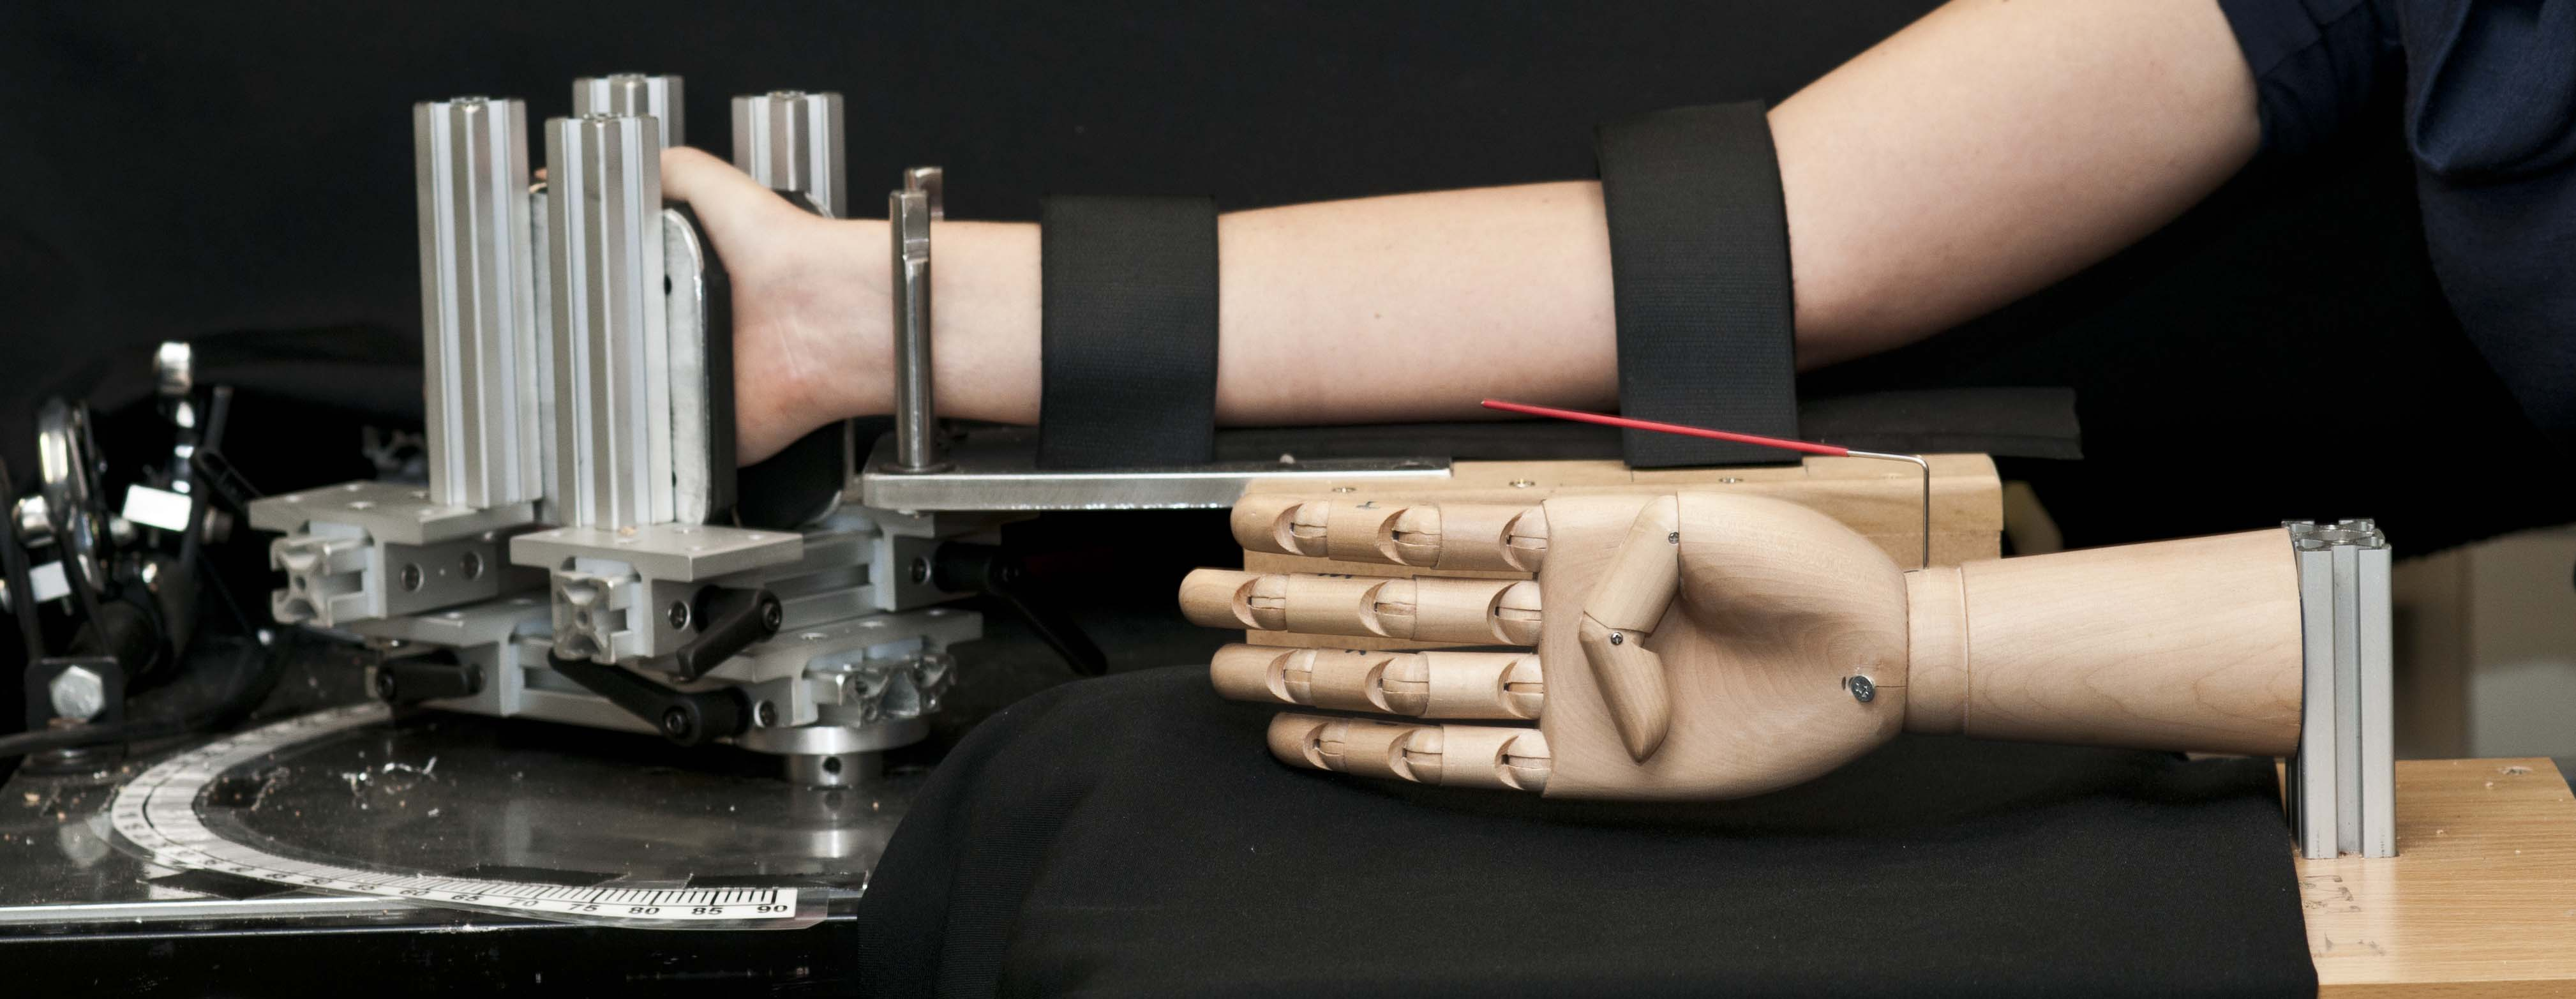 Wooden hand and participant arm involved in research about phantom limbs